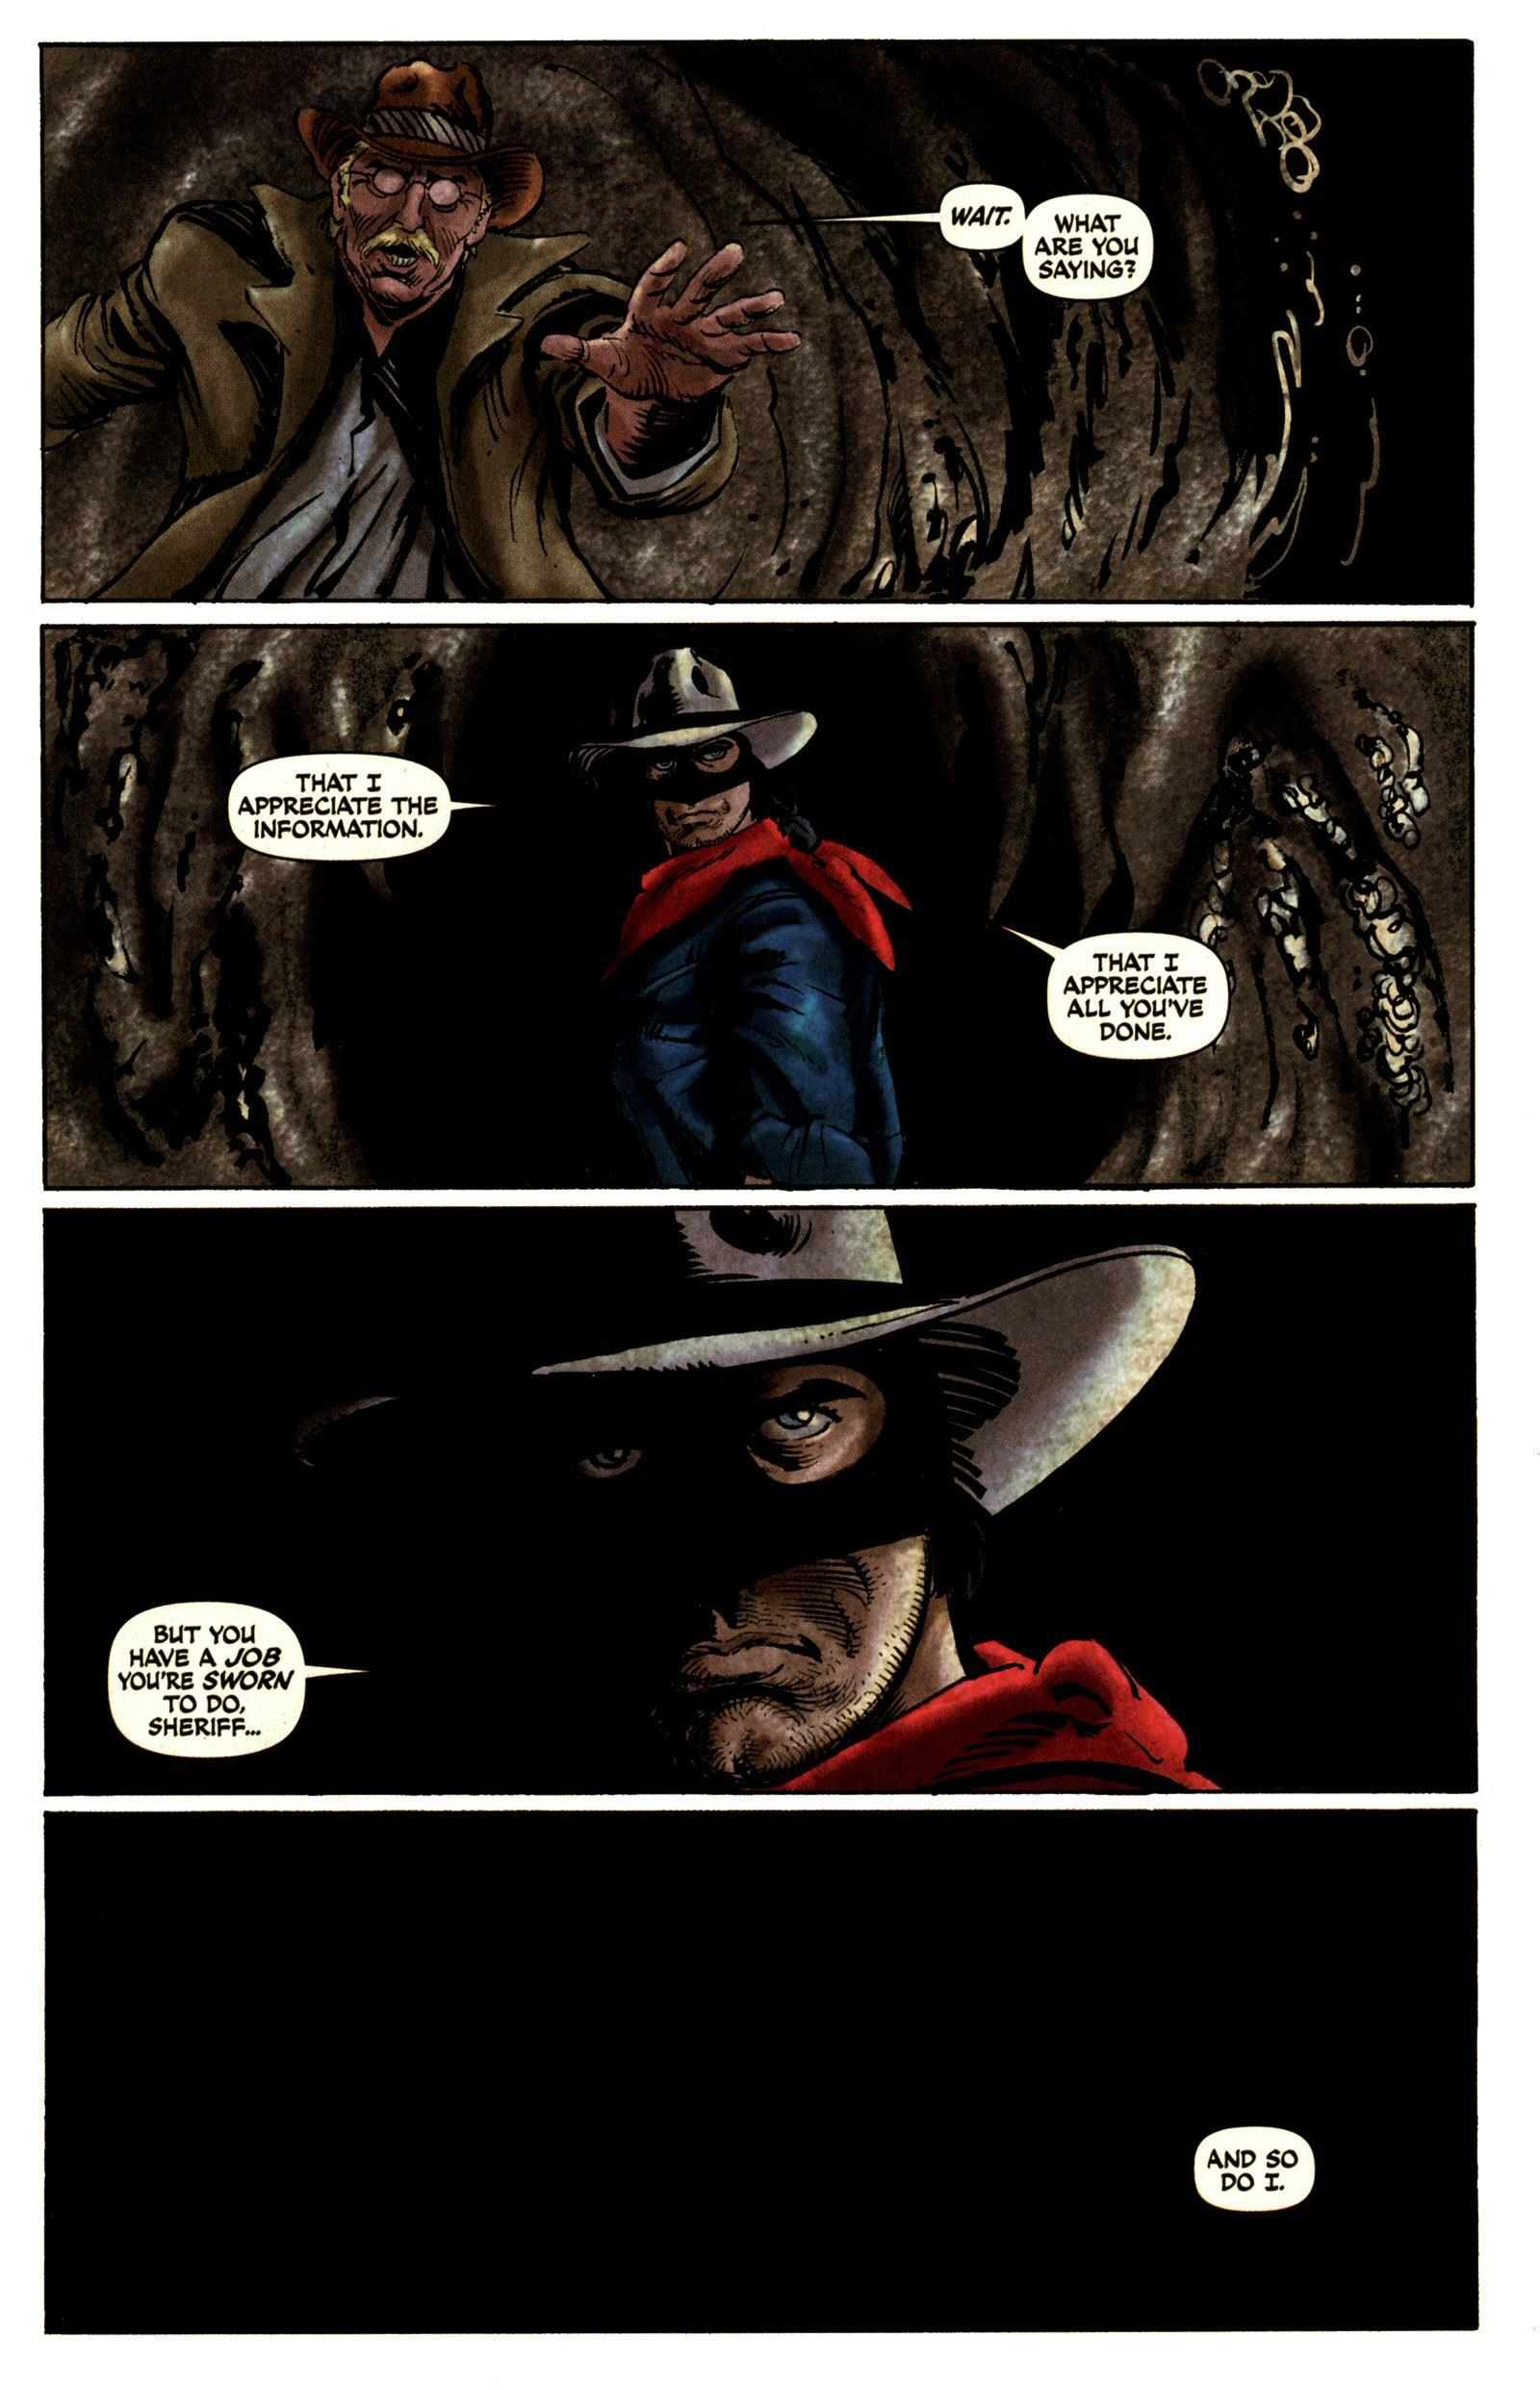 The Lone Ranger Resolve review